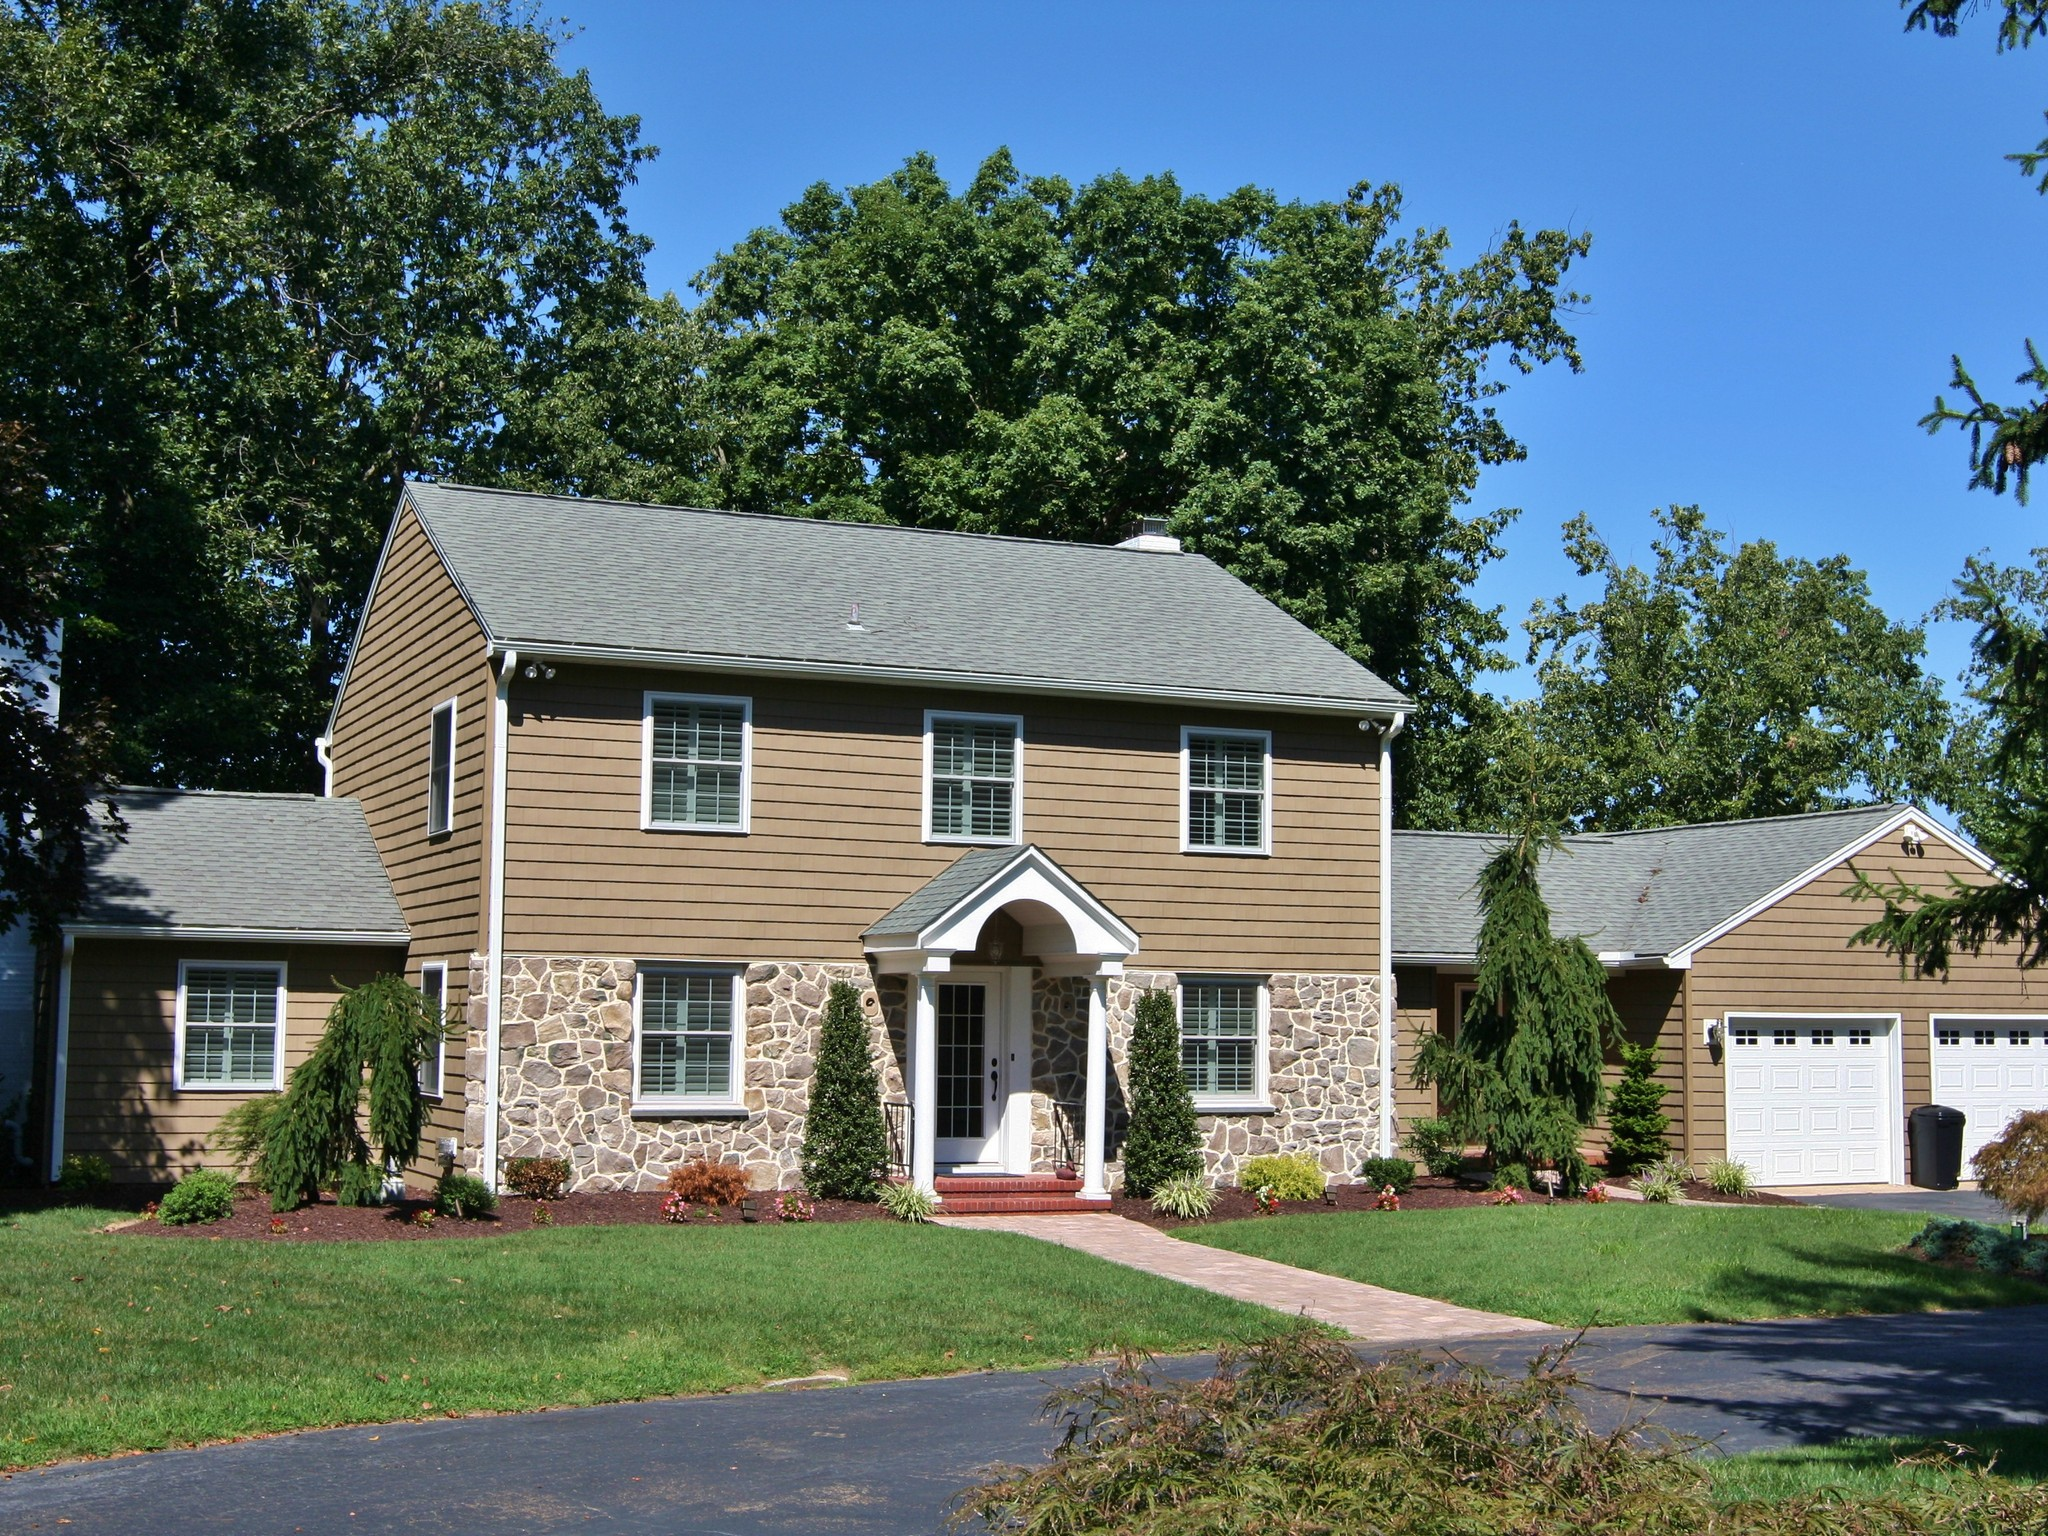 Villa per Vendita alle ore Chesapeake Landing 23226 Myers Road Chestertown, Maryland, 21620 Stati Uniti